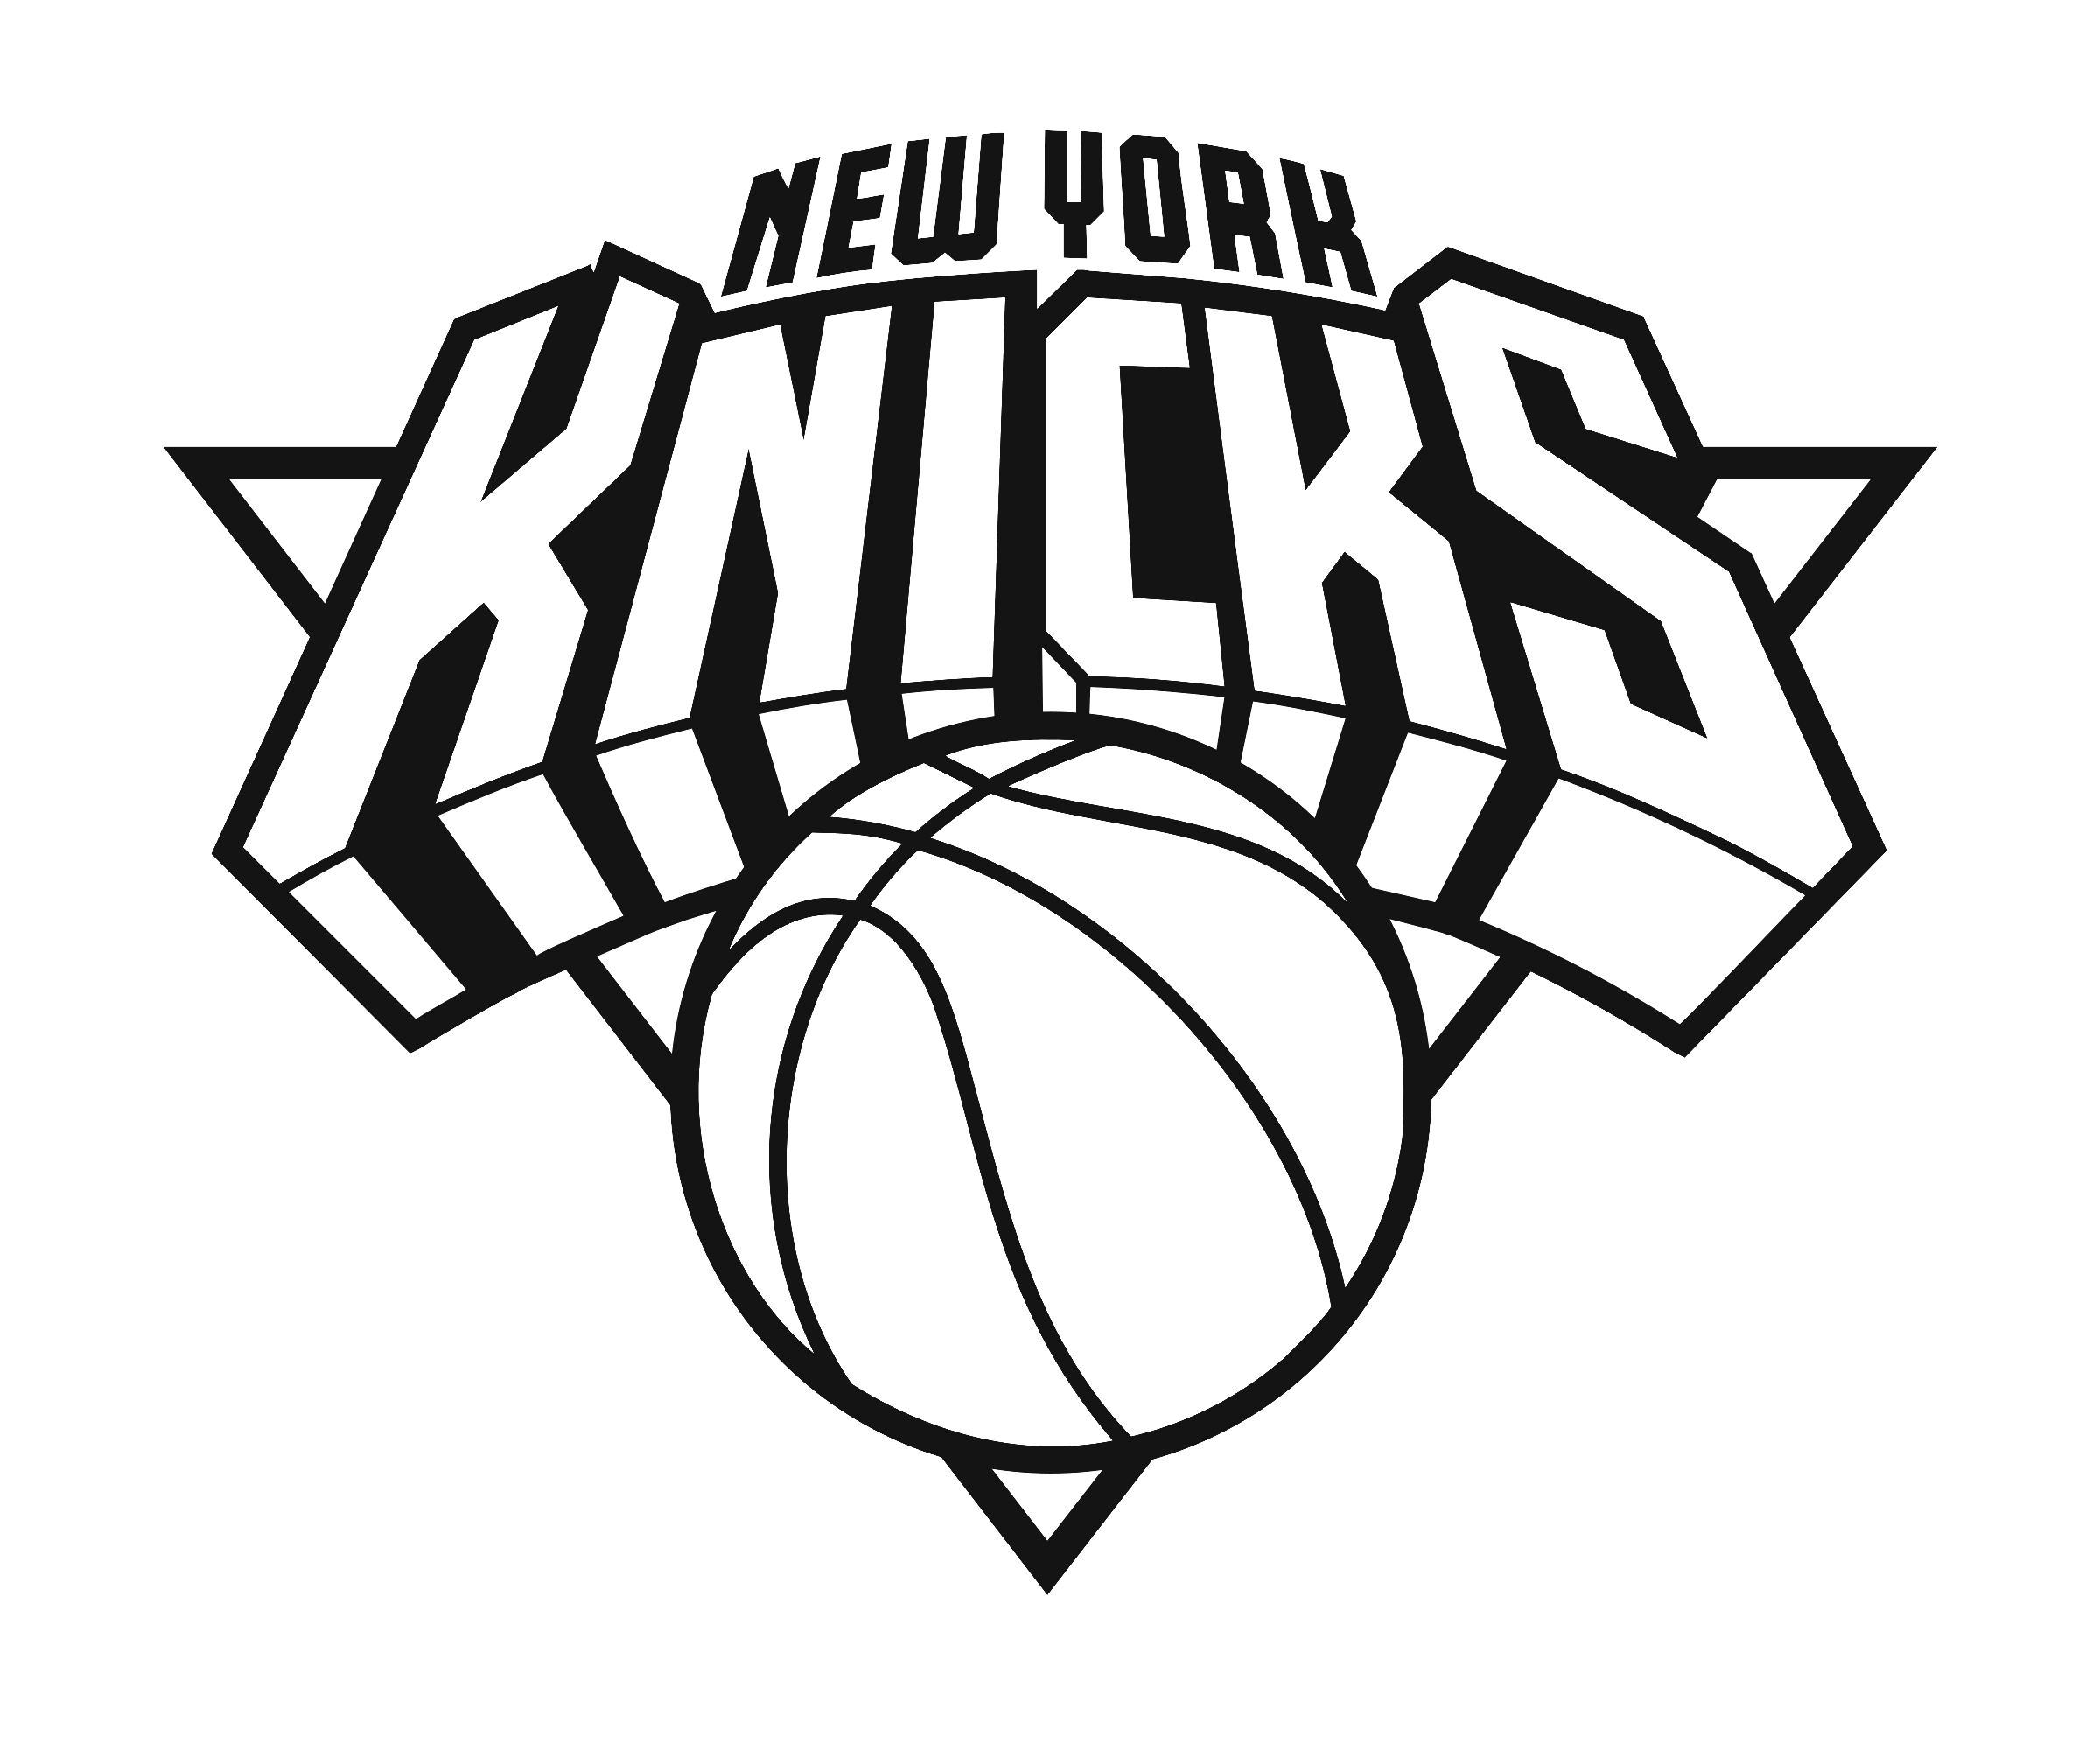 New York Knicks Logo PNG Transparent & SVG Vector ...